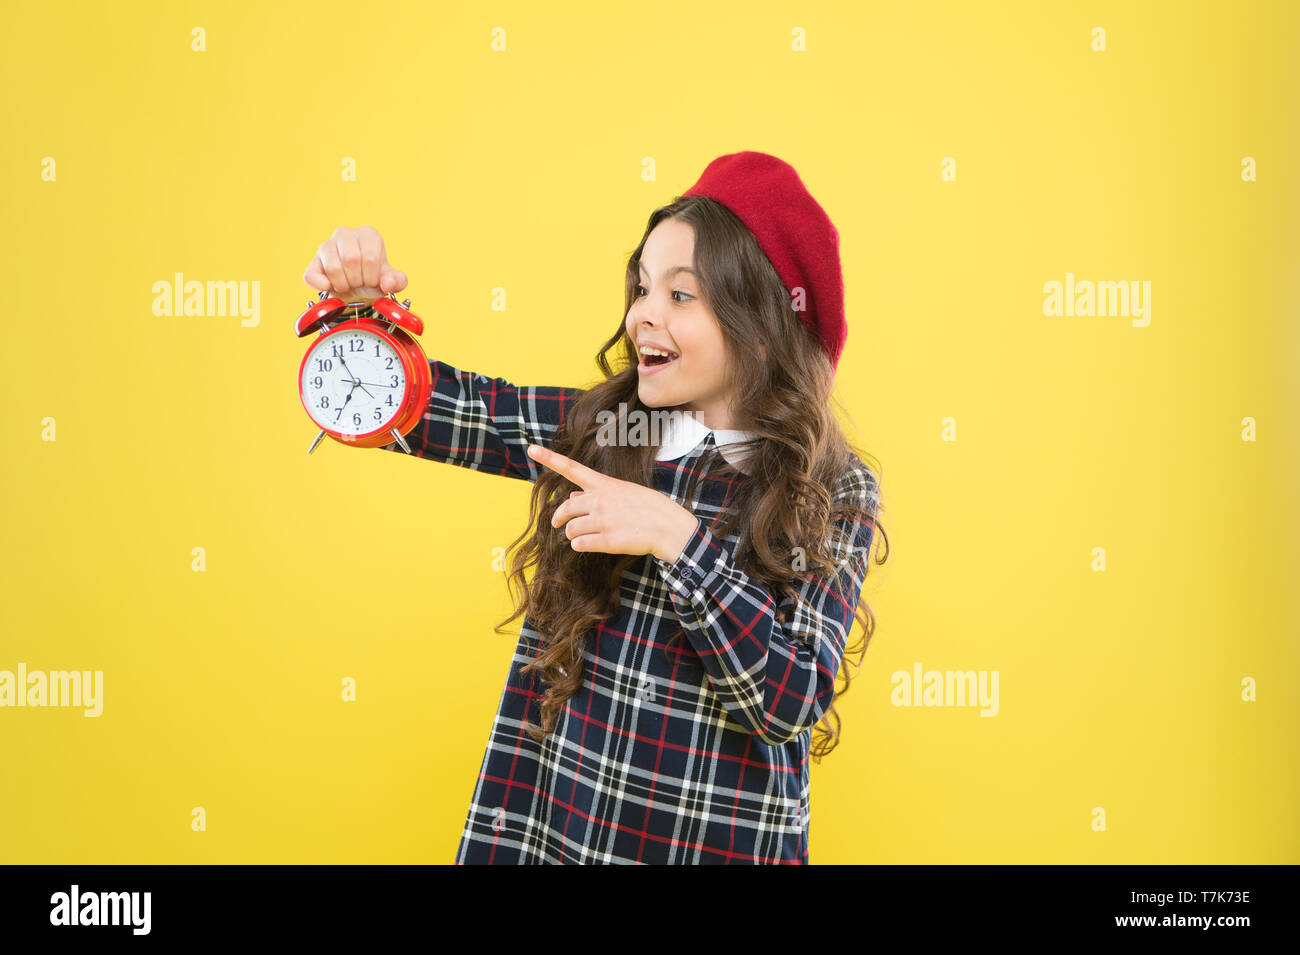 Girl with alarm clock. Set up alarm clock. Child little girl hold red clock. It is time. Always on time. It is never too late. Define your own rhythm of life. Happy hours concept. Schedule and timing. - Stock Image